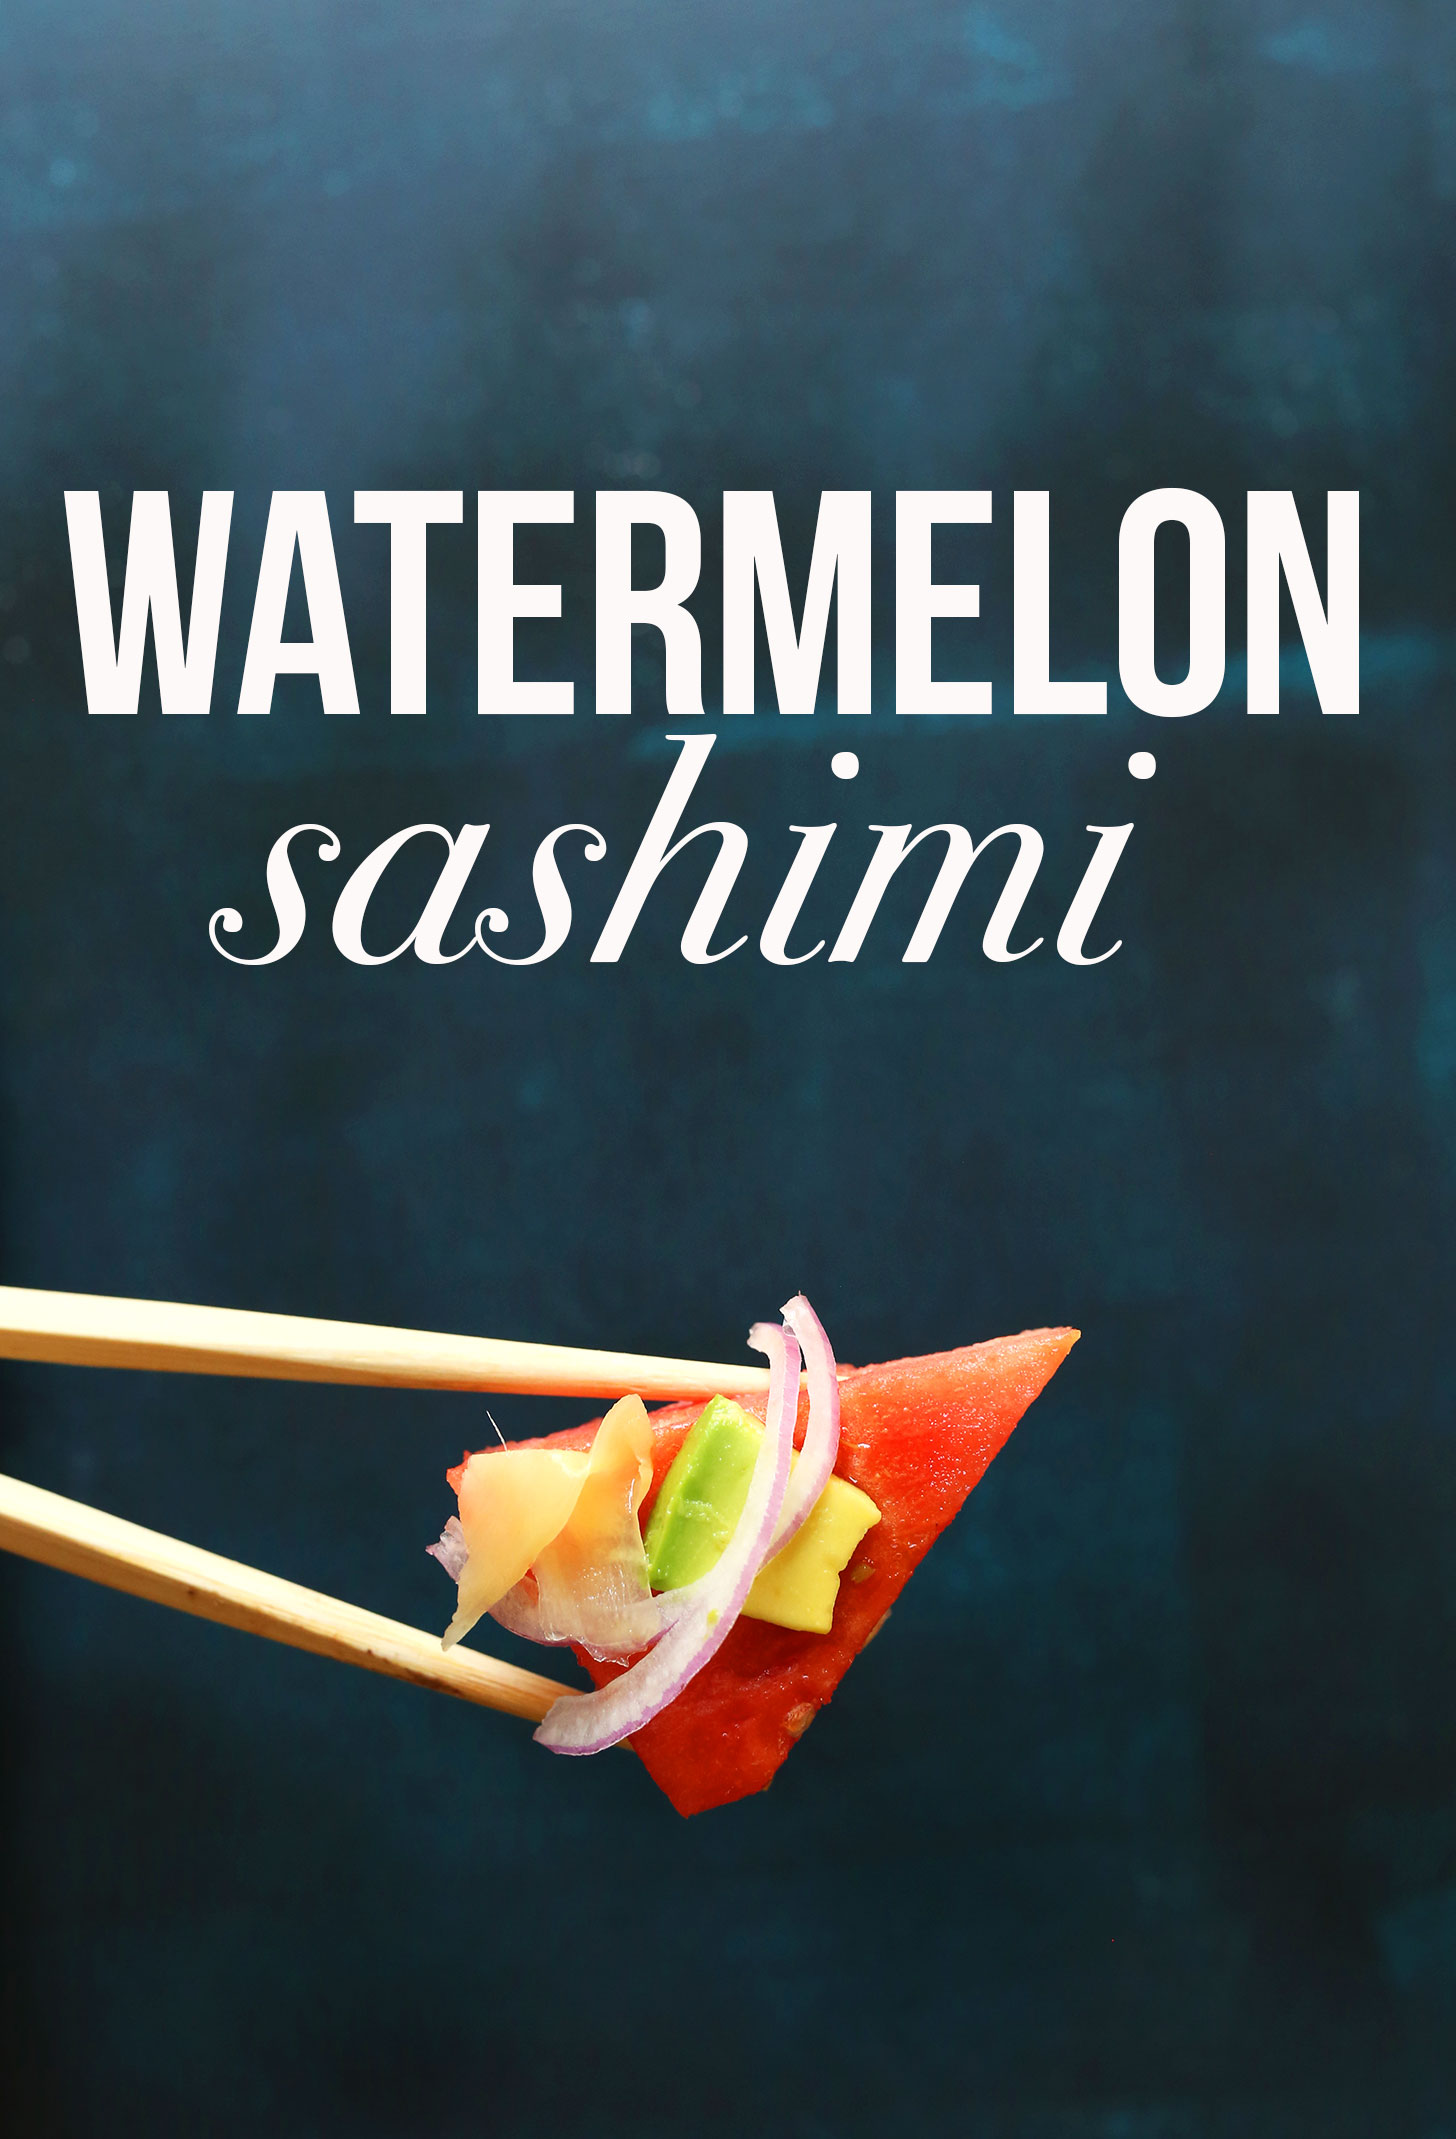 Using chopsticks to pick up a piece of vegan Watermelon Sashimi